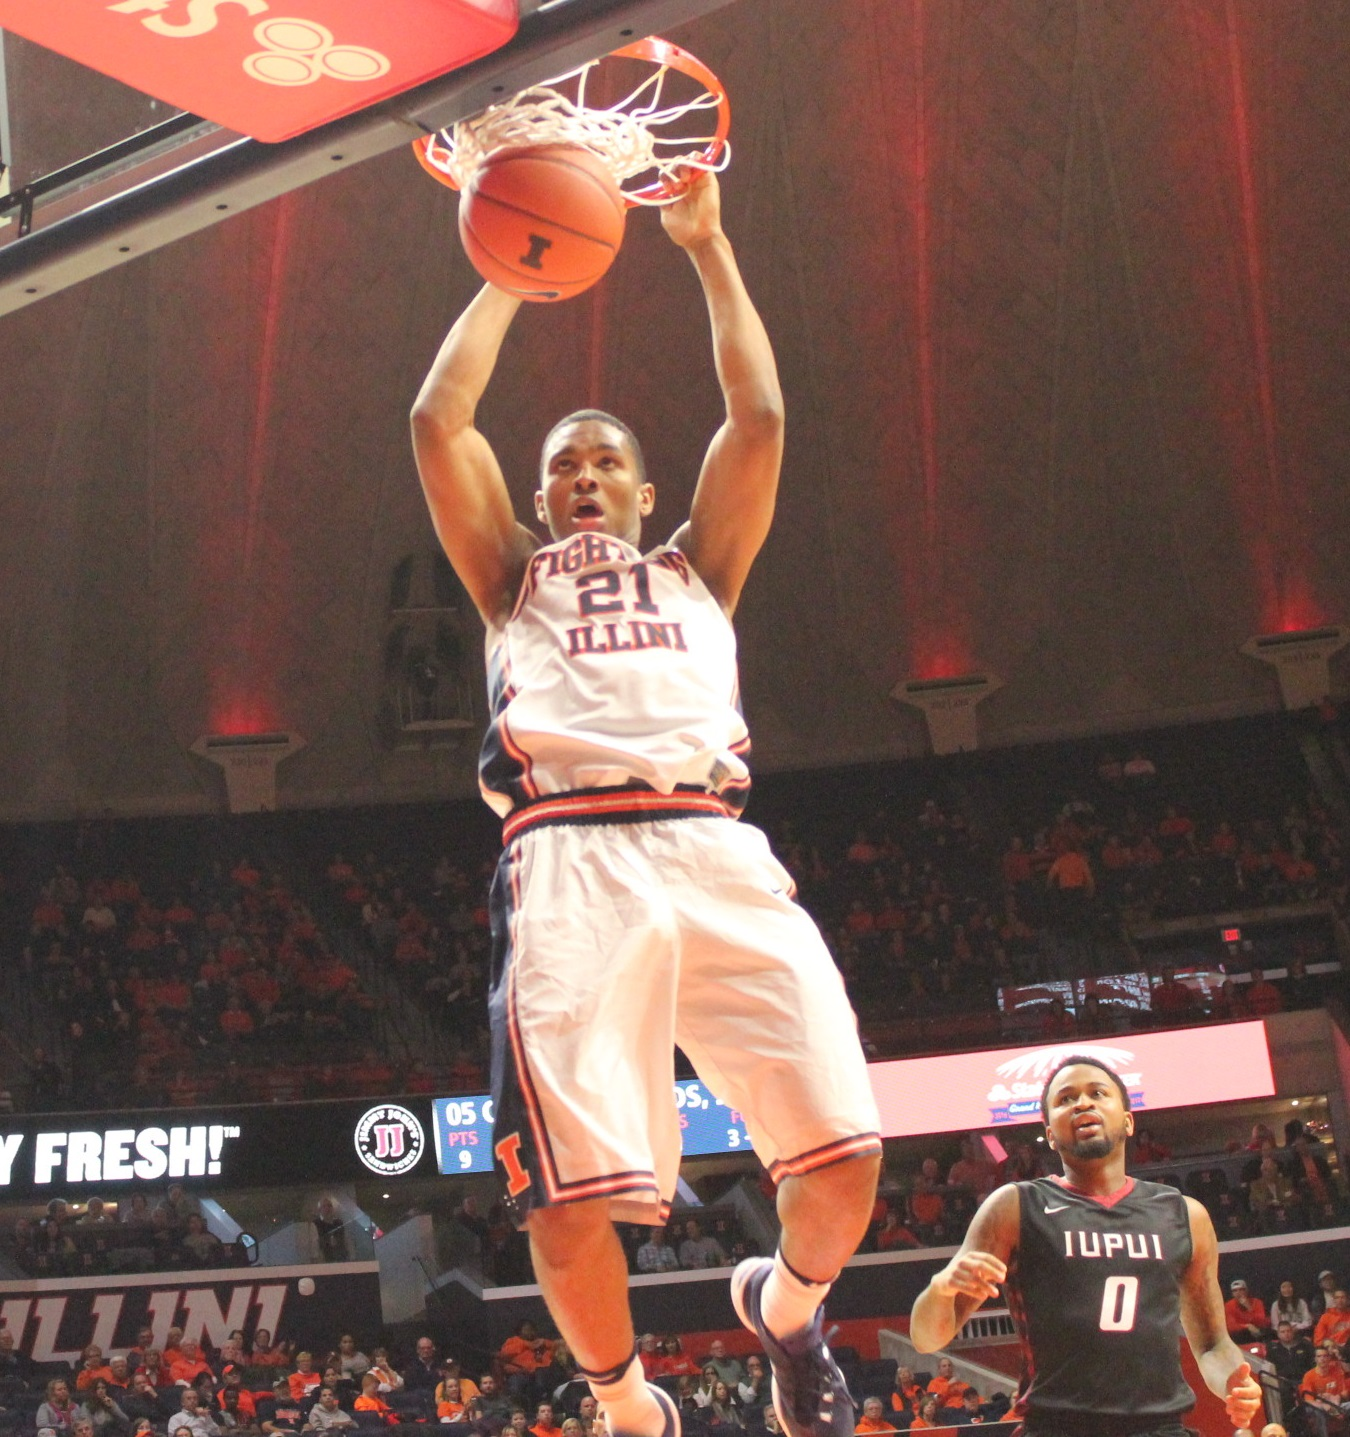 malcolm-hill-punctuates-a-fast-break-while-iupuis-darell-combs-can-only-watch